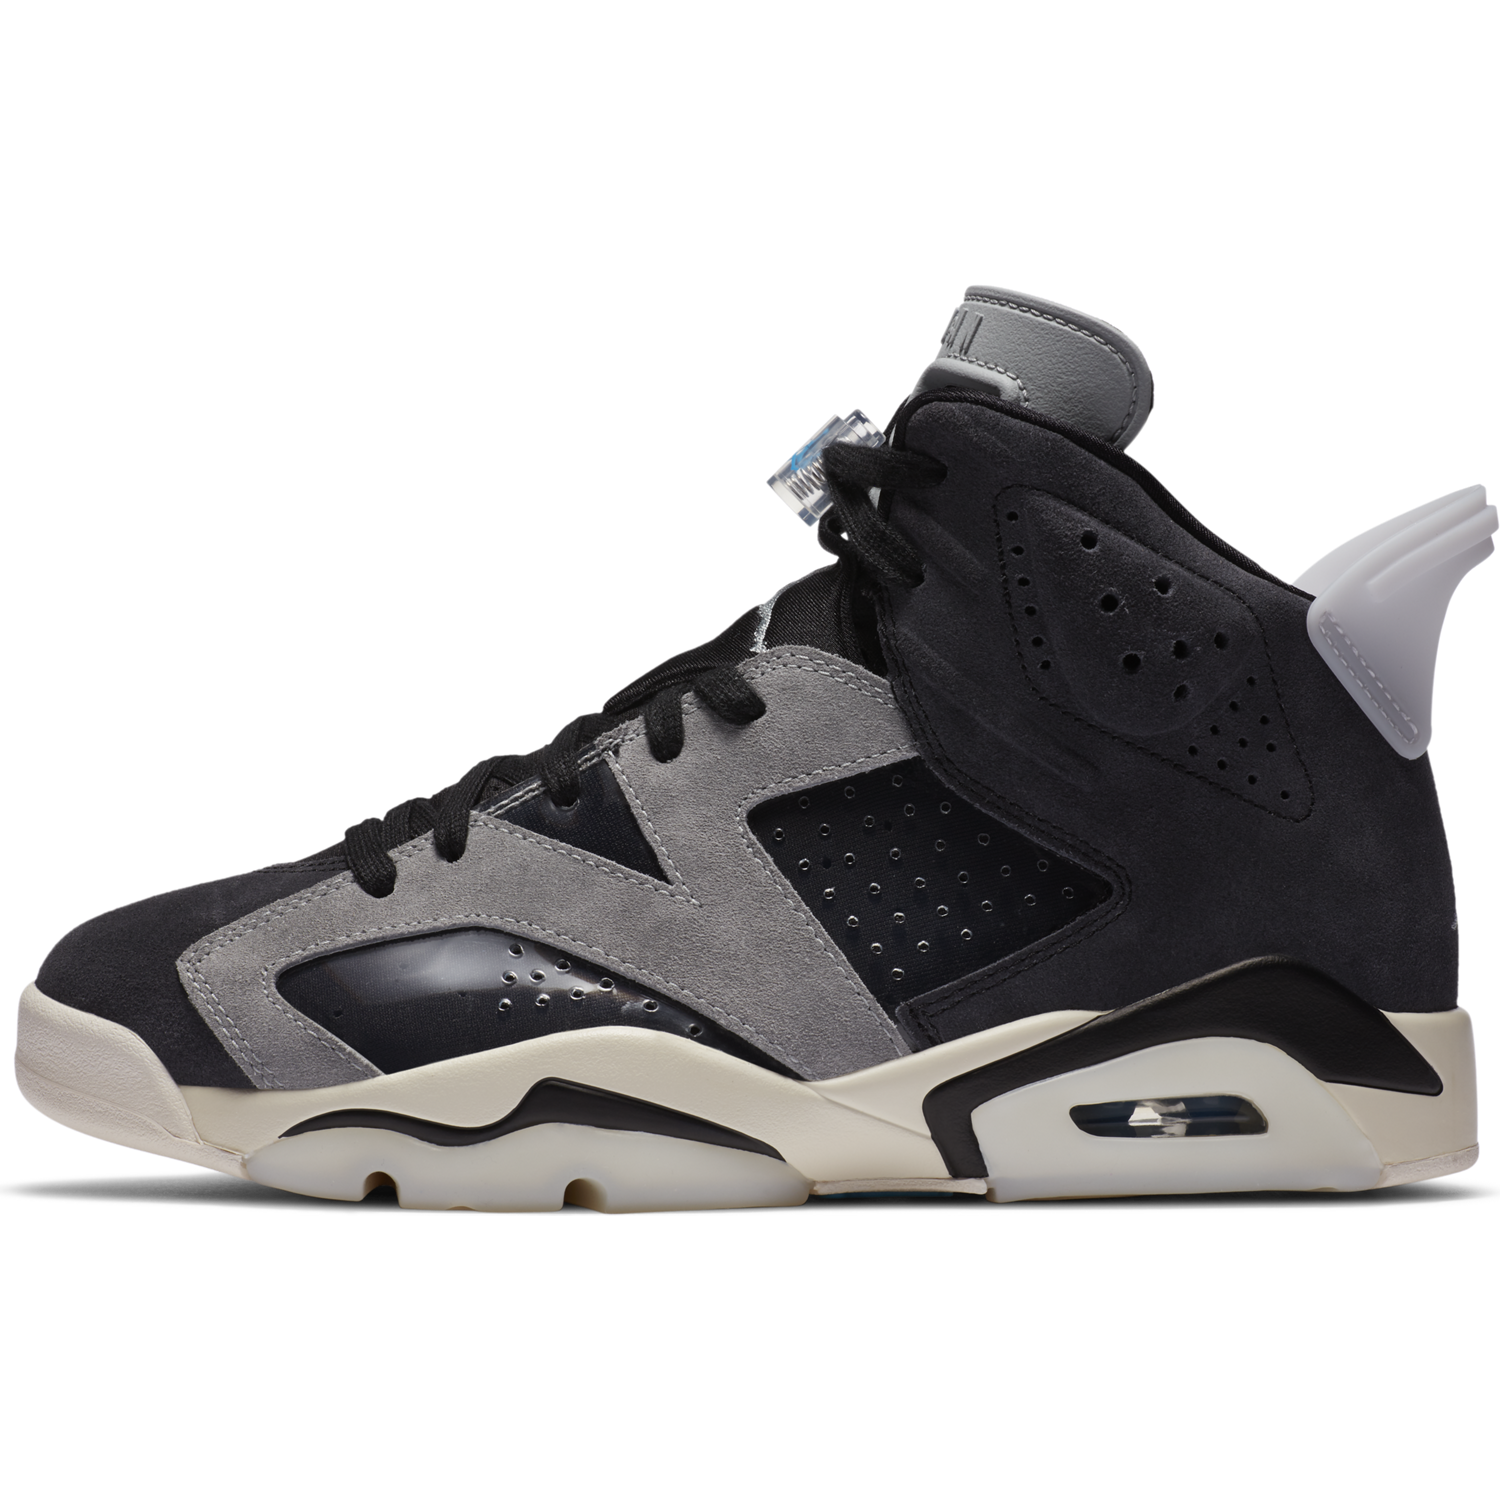 AIR JORDAN W'S FOOTWEAR W JORDAN 6 RETRO - BLACK/LIGHT SOLAR FLARE